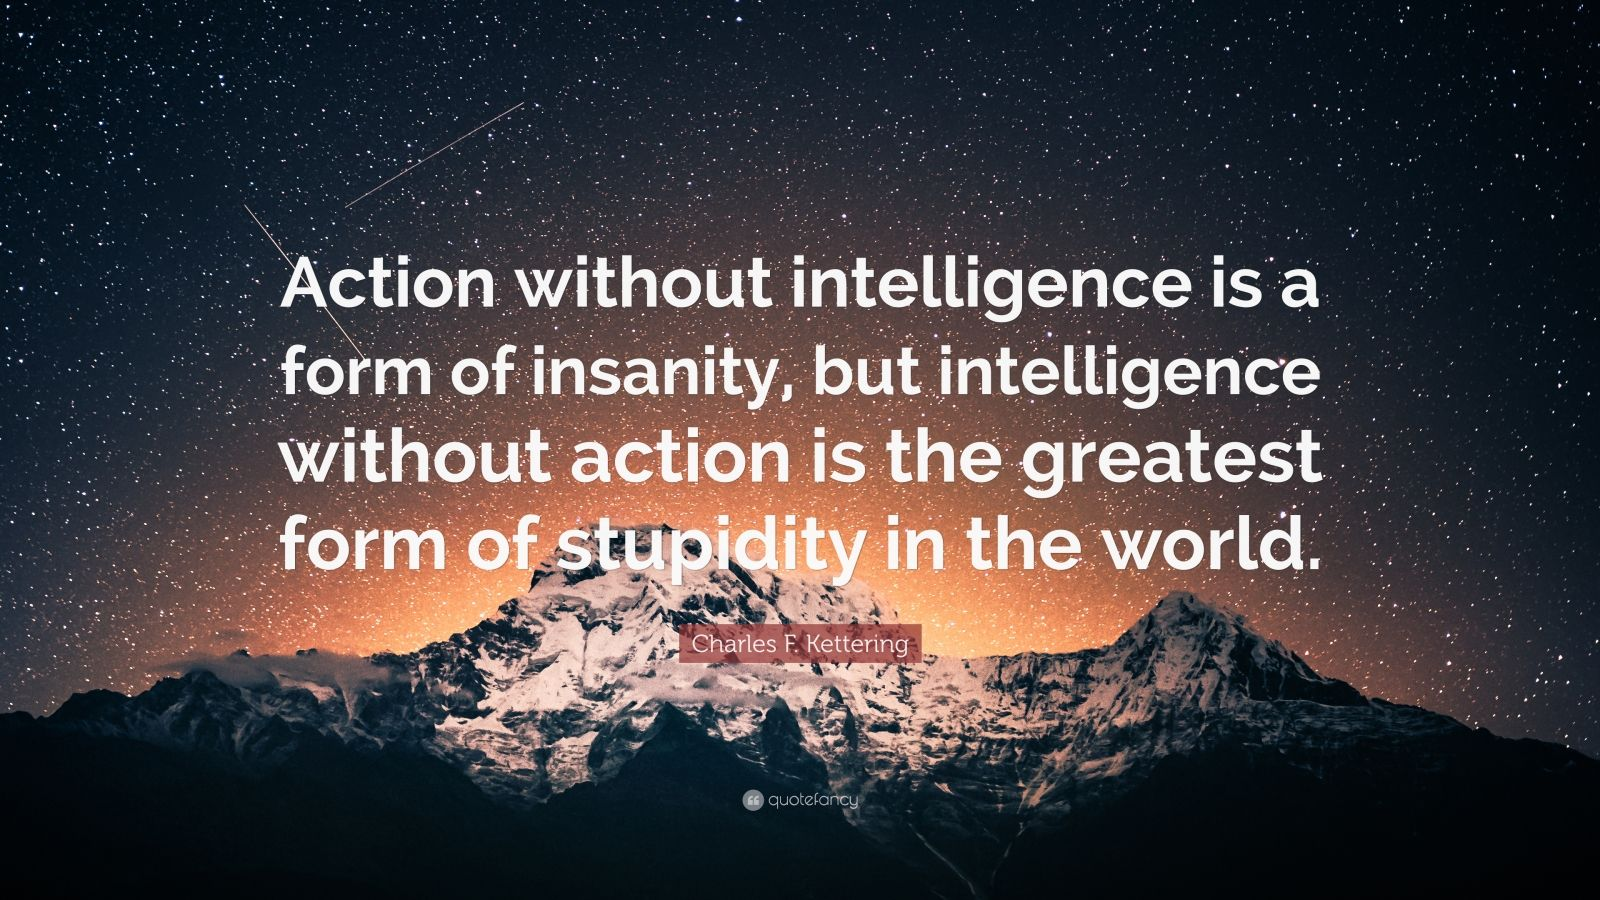 """Charles F. Kettering Quote: """"Action without intelligence is a form of insanity, but intelligence without action is the greatest form of stupidity in the world."""""""